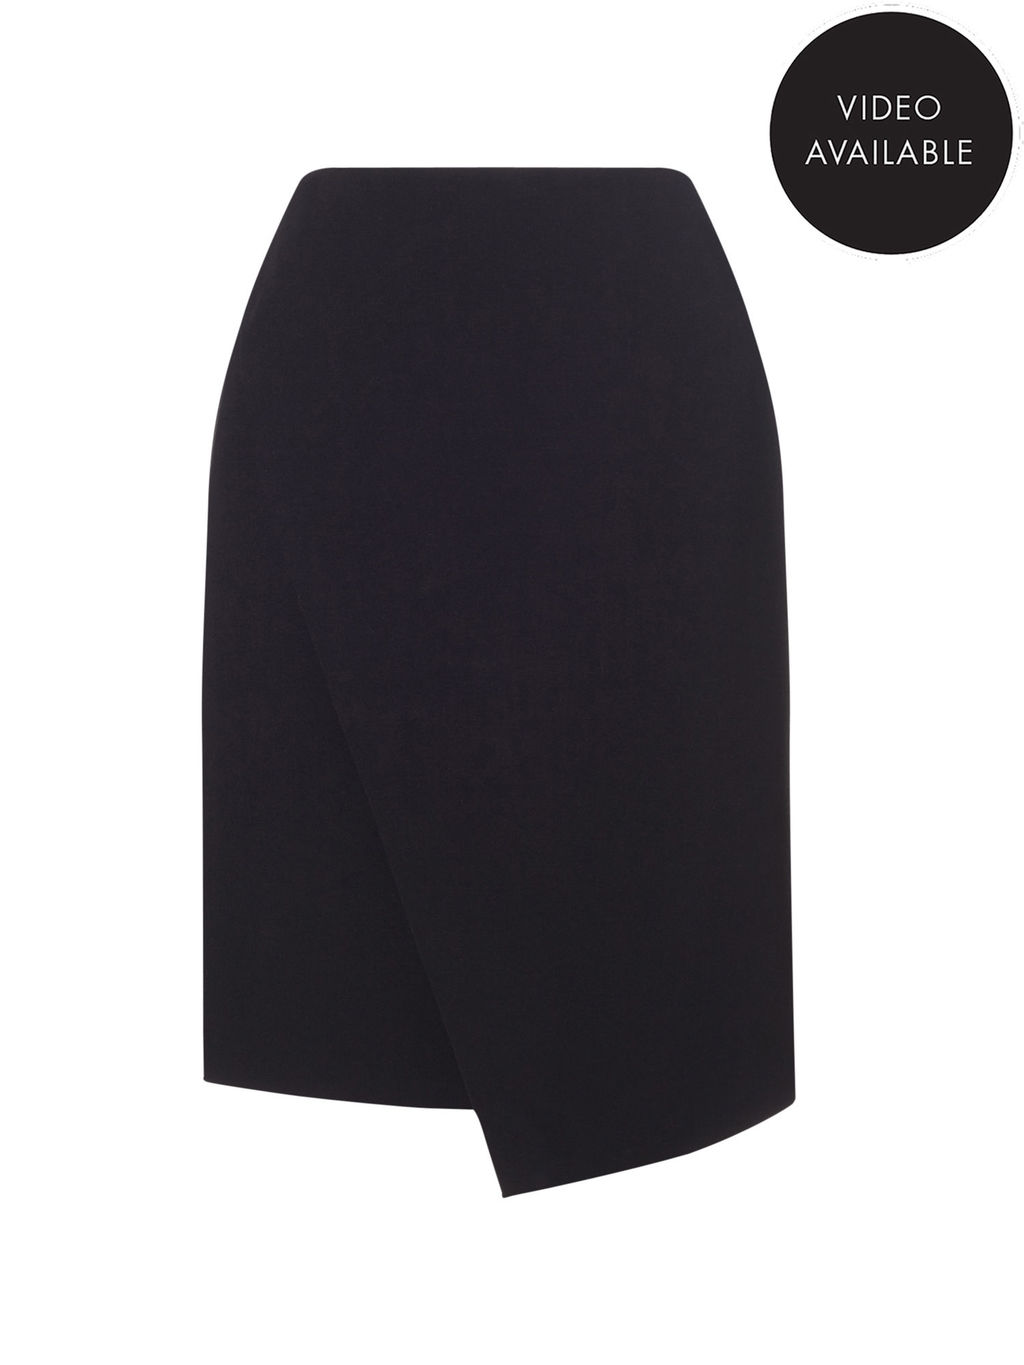 Jeff Banks Black Wrap Skirt - pattern: plain; style: wrap/faux wrap; fit: tailored/fitted; waist: high rise; predominant colour: black; occasions: evening, work, creative work; length: just above the knee; fibres: polyester/polyamide - stretch; waist detail: feature waist detail; texture group: crepes; pattern type: fabric; season: s/s 2016; wardrobe: basic